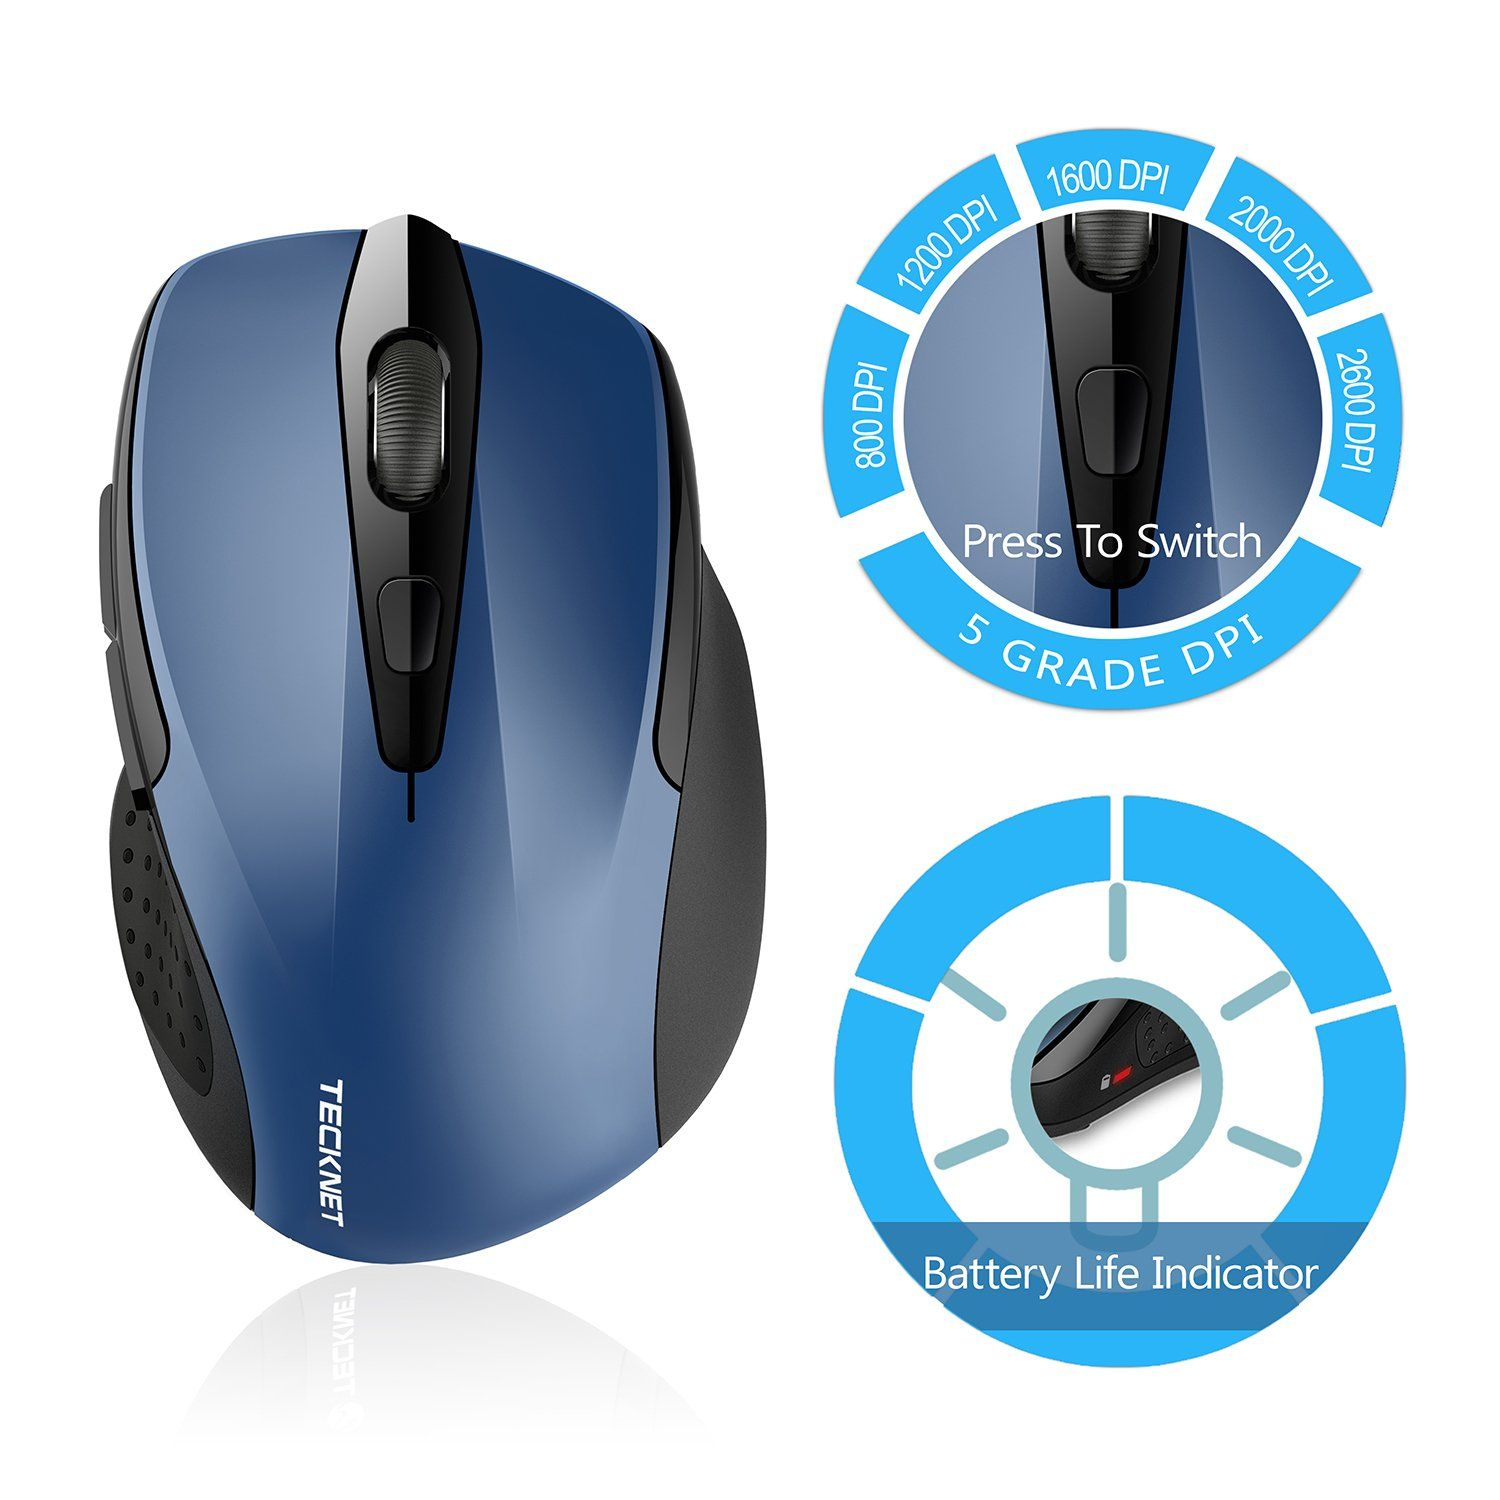 c44516b9934 TeckNet Pro 2.4G Ergonomic Wireless Mobile Optical Mouse with USB Nano  Receiver for Laptop,PC,Computer,Chromebook,MacBook,Notebook,6 Buttons,24  Months ...